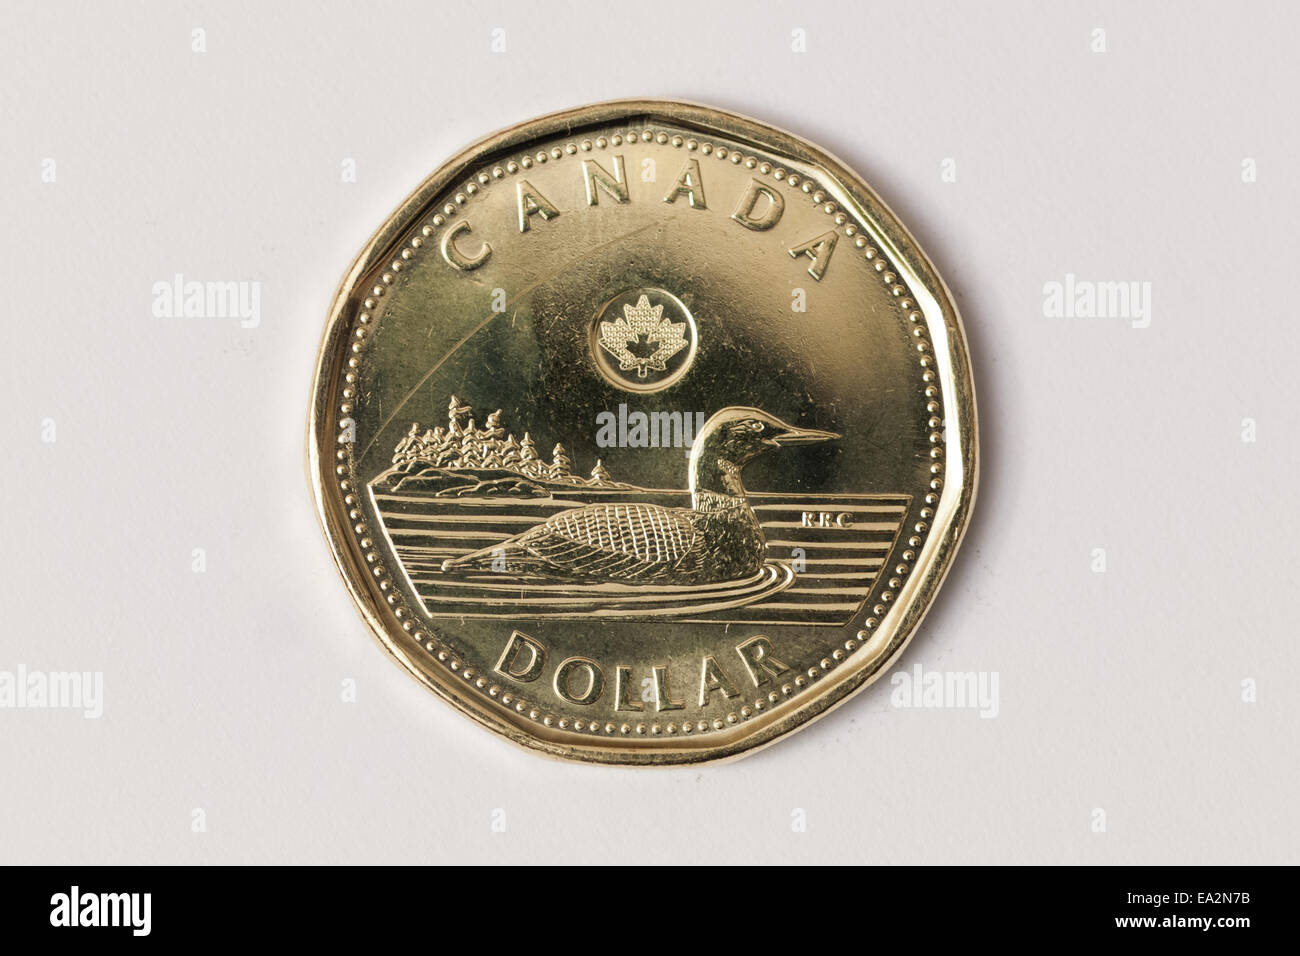 A loonie, as a Canadian one dollar coin is commonly called. - Stock Image